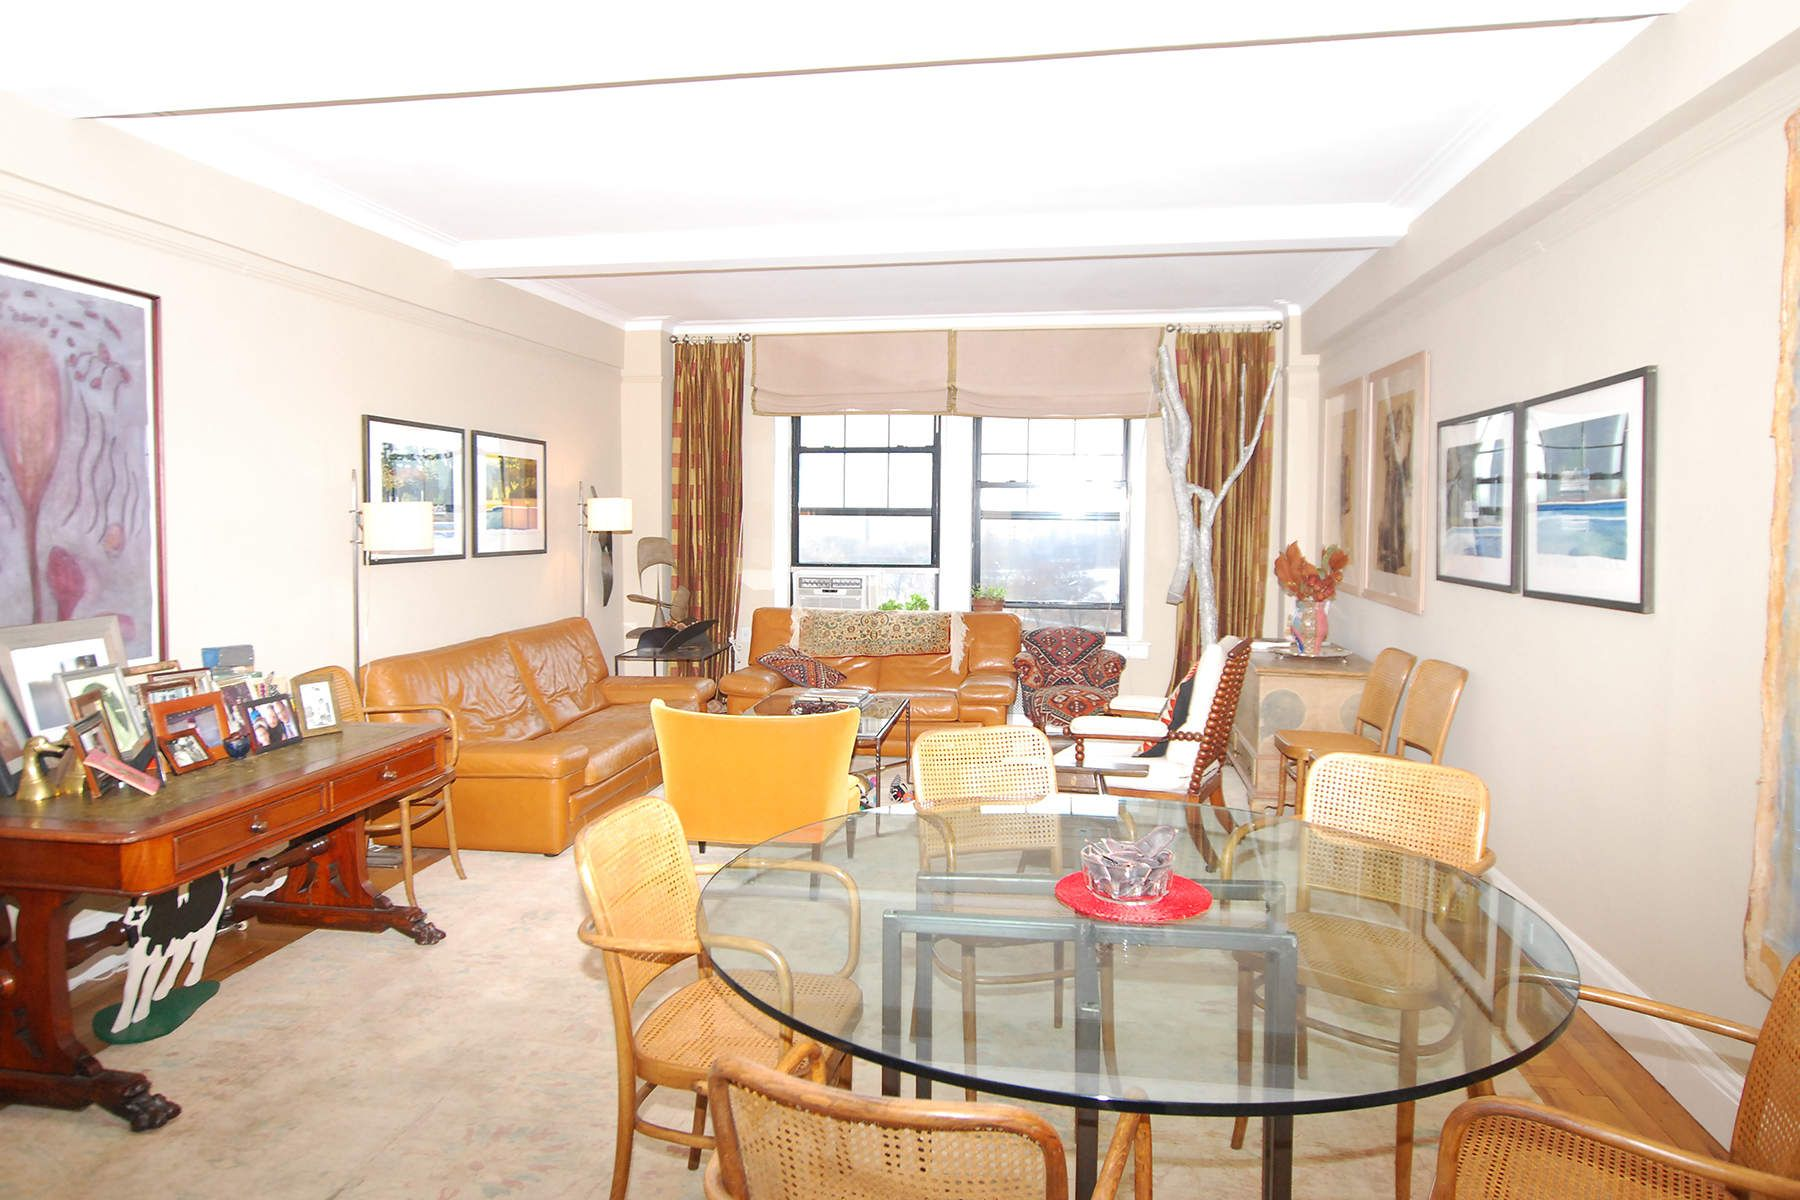 Apartment for Rent at 350 Central Park West, Apt 14H New York, New York 10025 United States